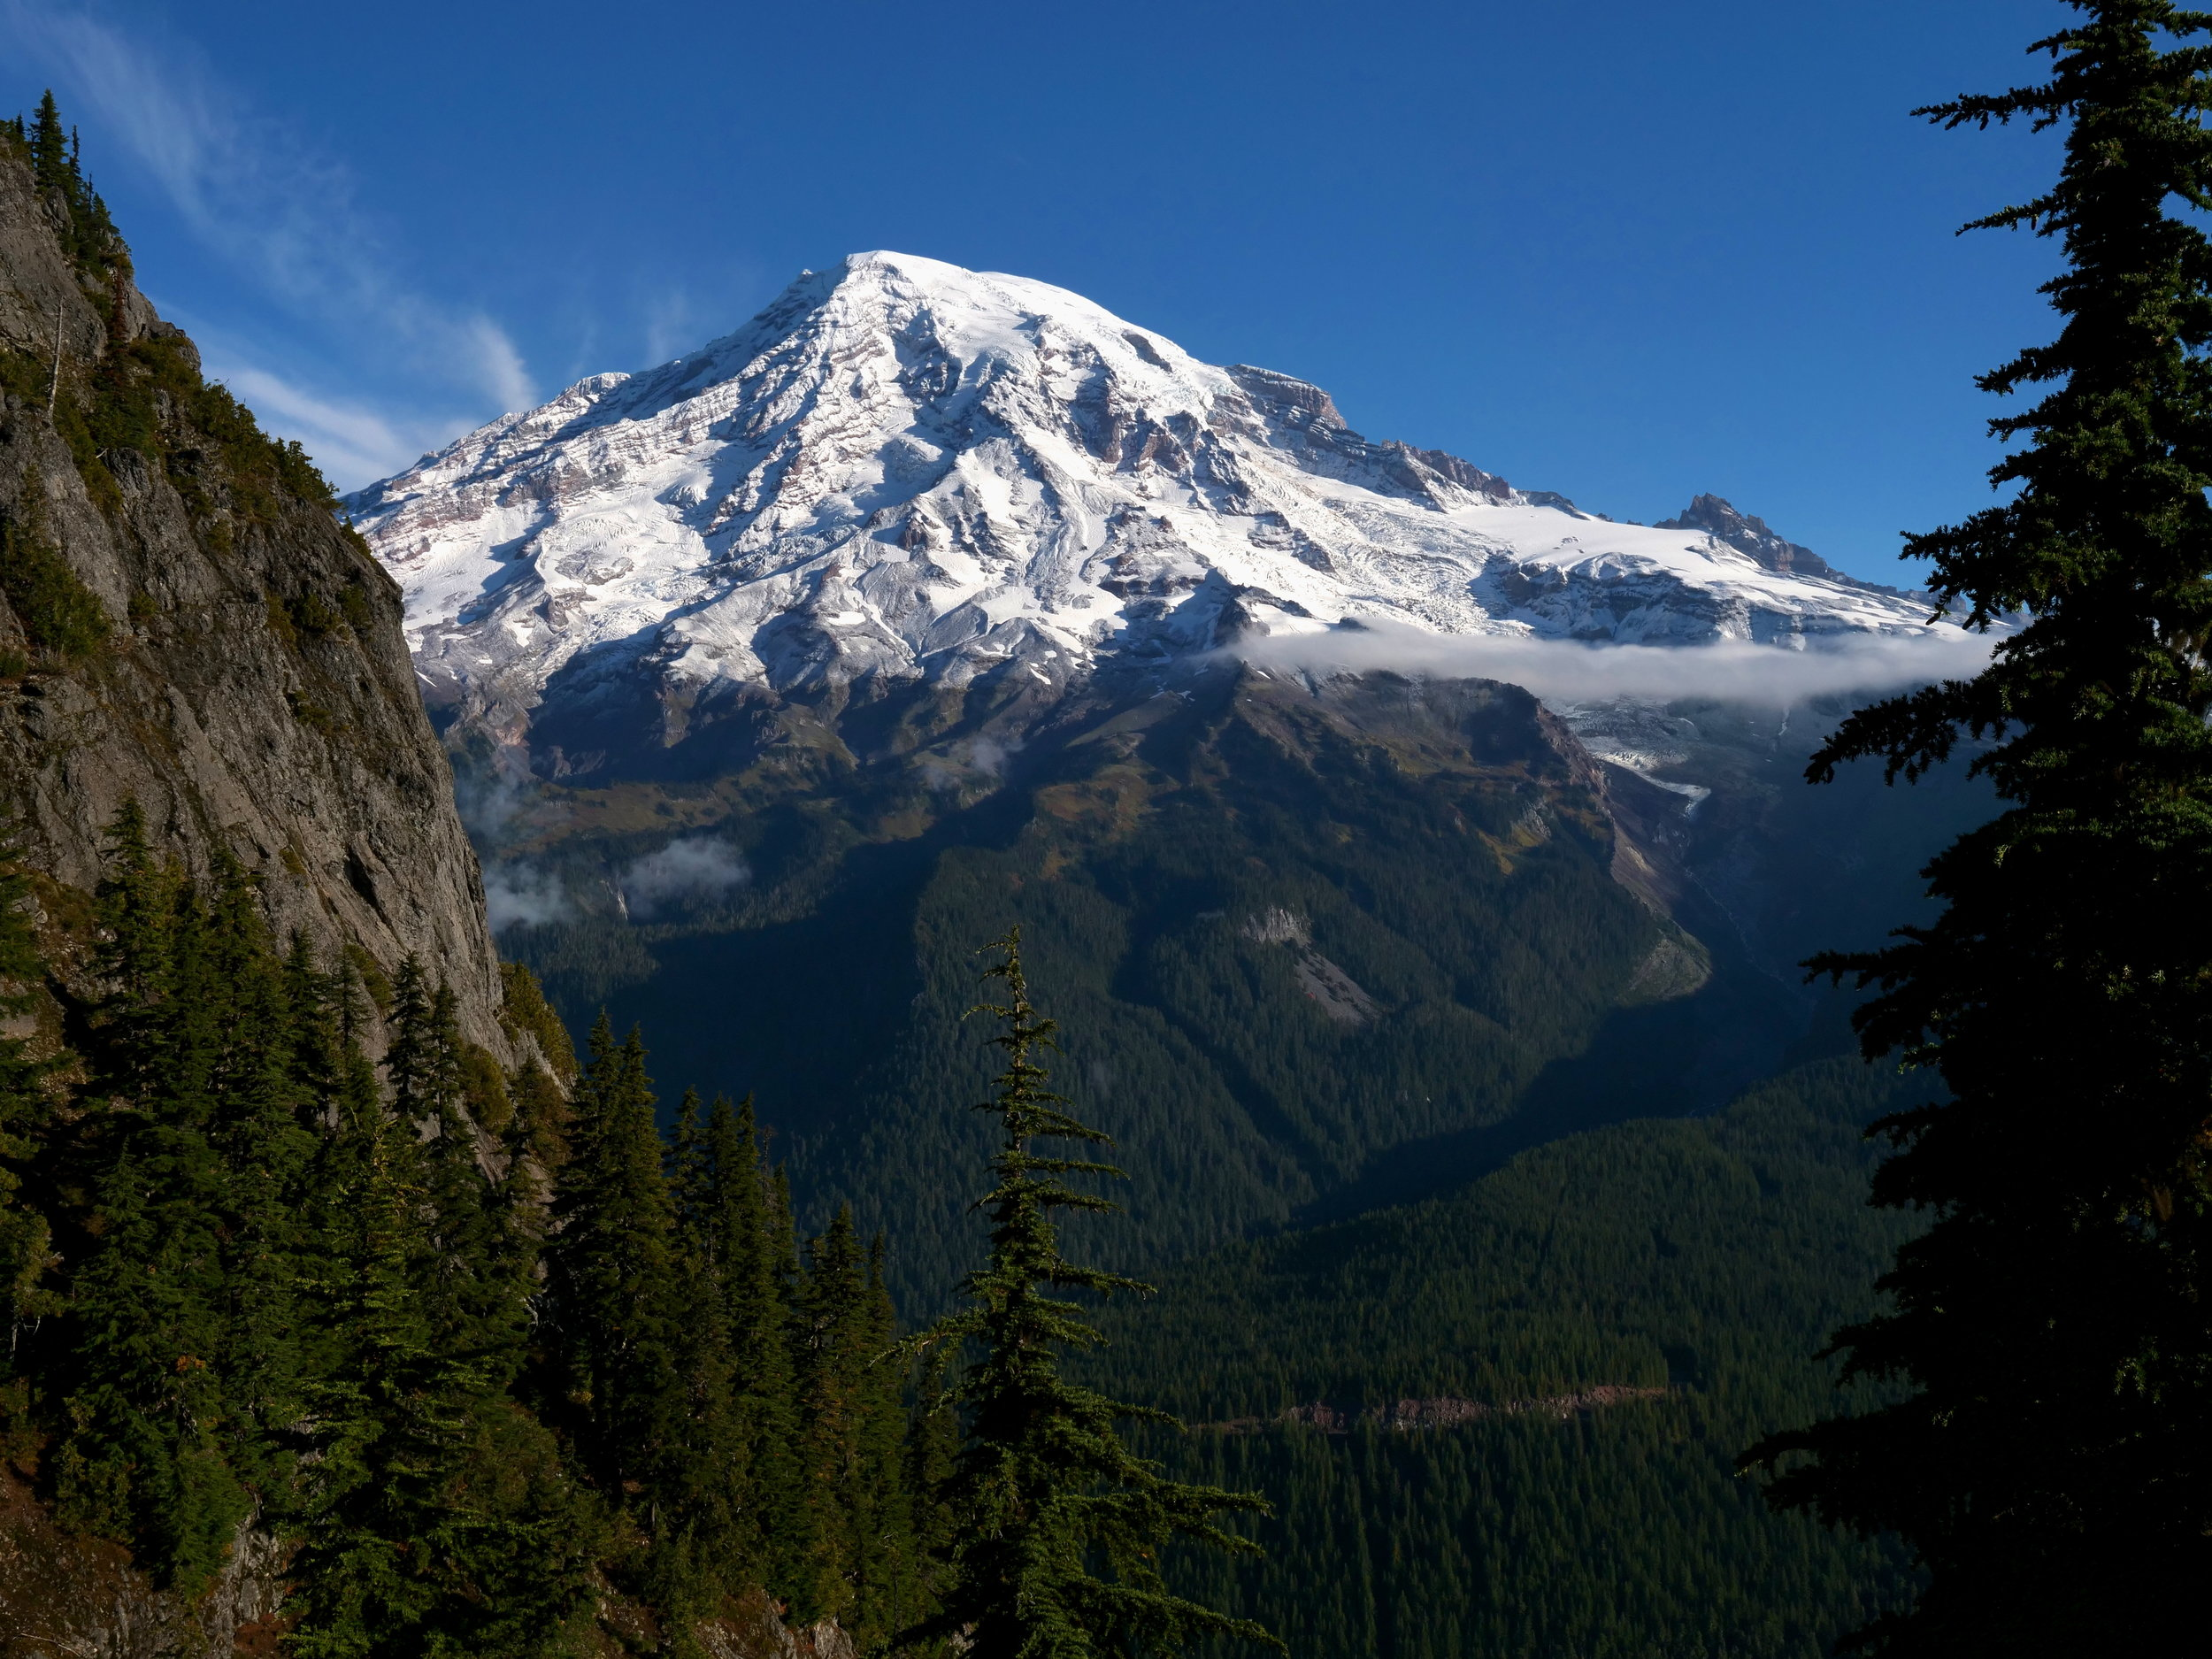 Mt. Rainier from past the saddle on the Eagle Peak trail